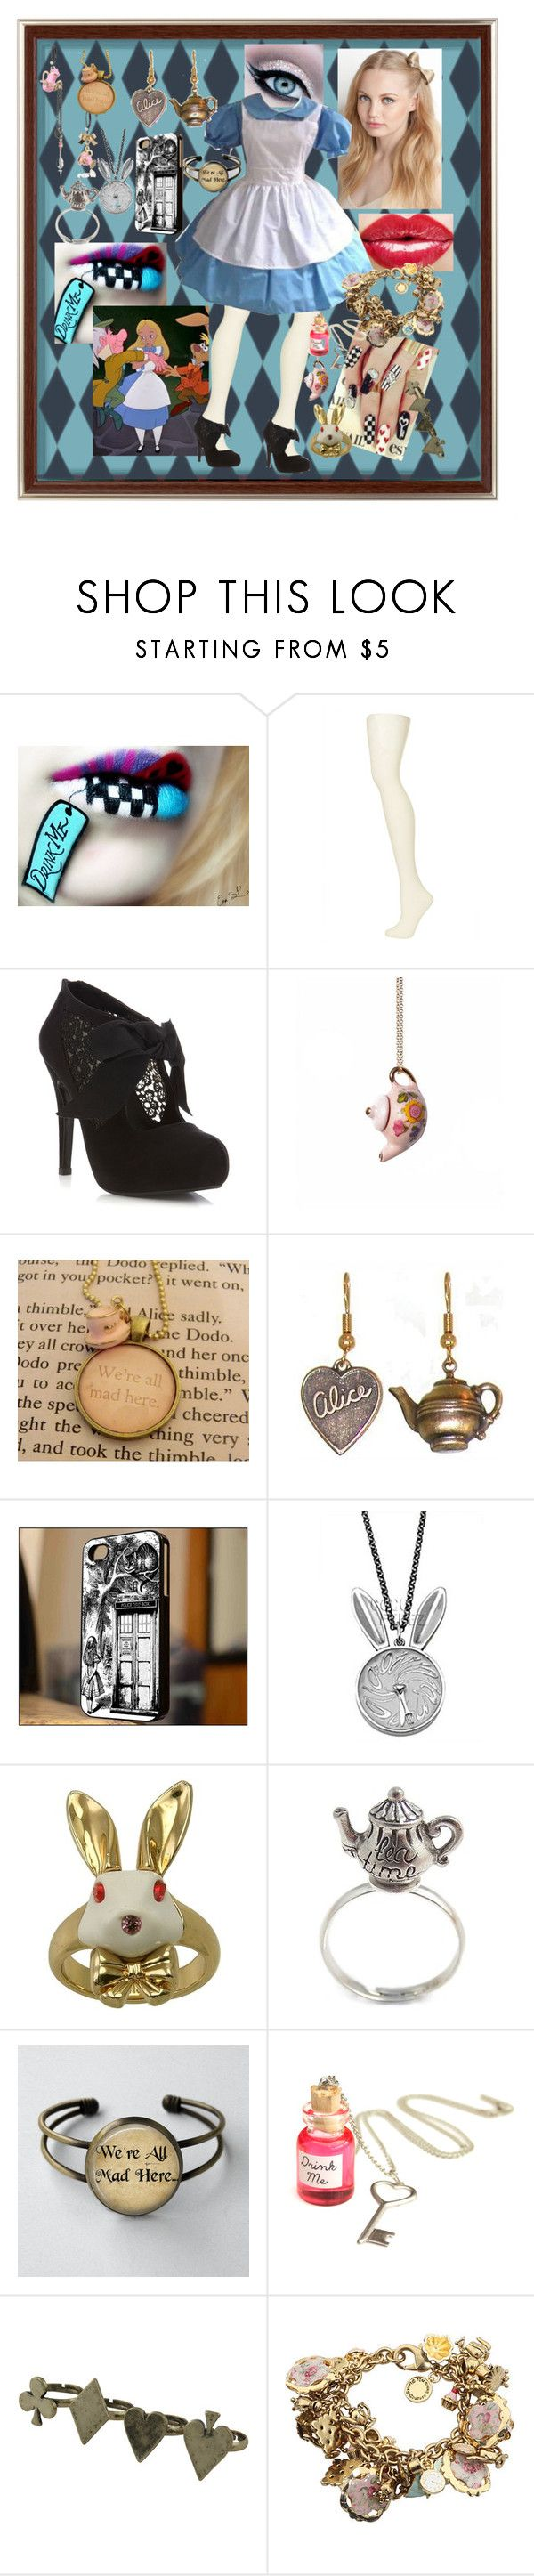 """""""Alice in Wonderland"""" by faleur102 ❤ liked on Polyvore featuring Topshop, Miss Selfridge, amika, Tom Binns, Disney Couture, Once Upon a Time, Crafted, Betsey Johnson, disney and Alice"""